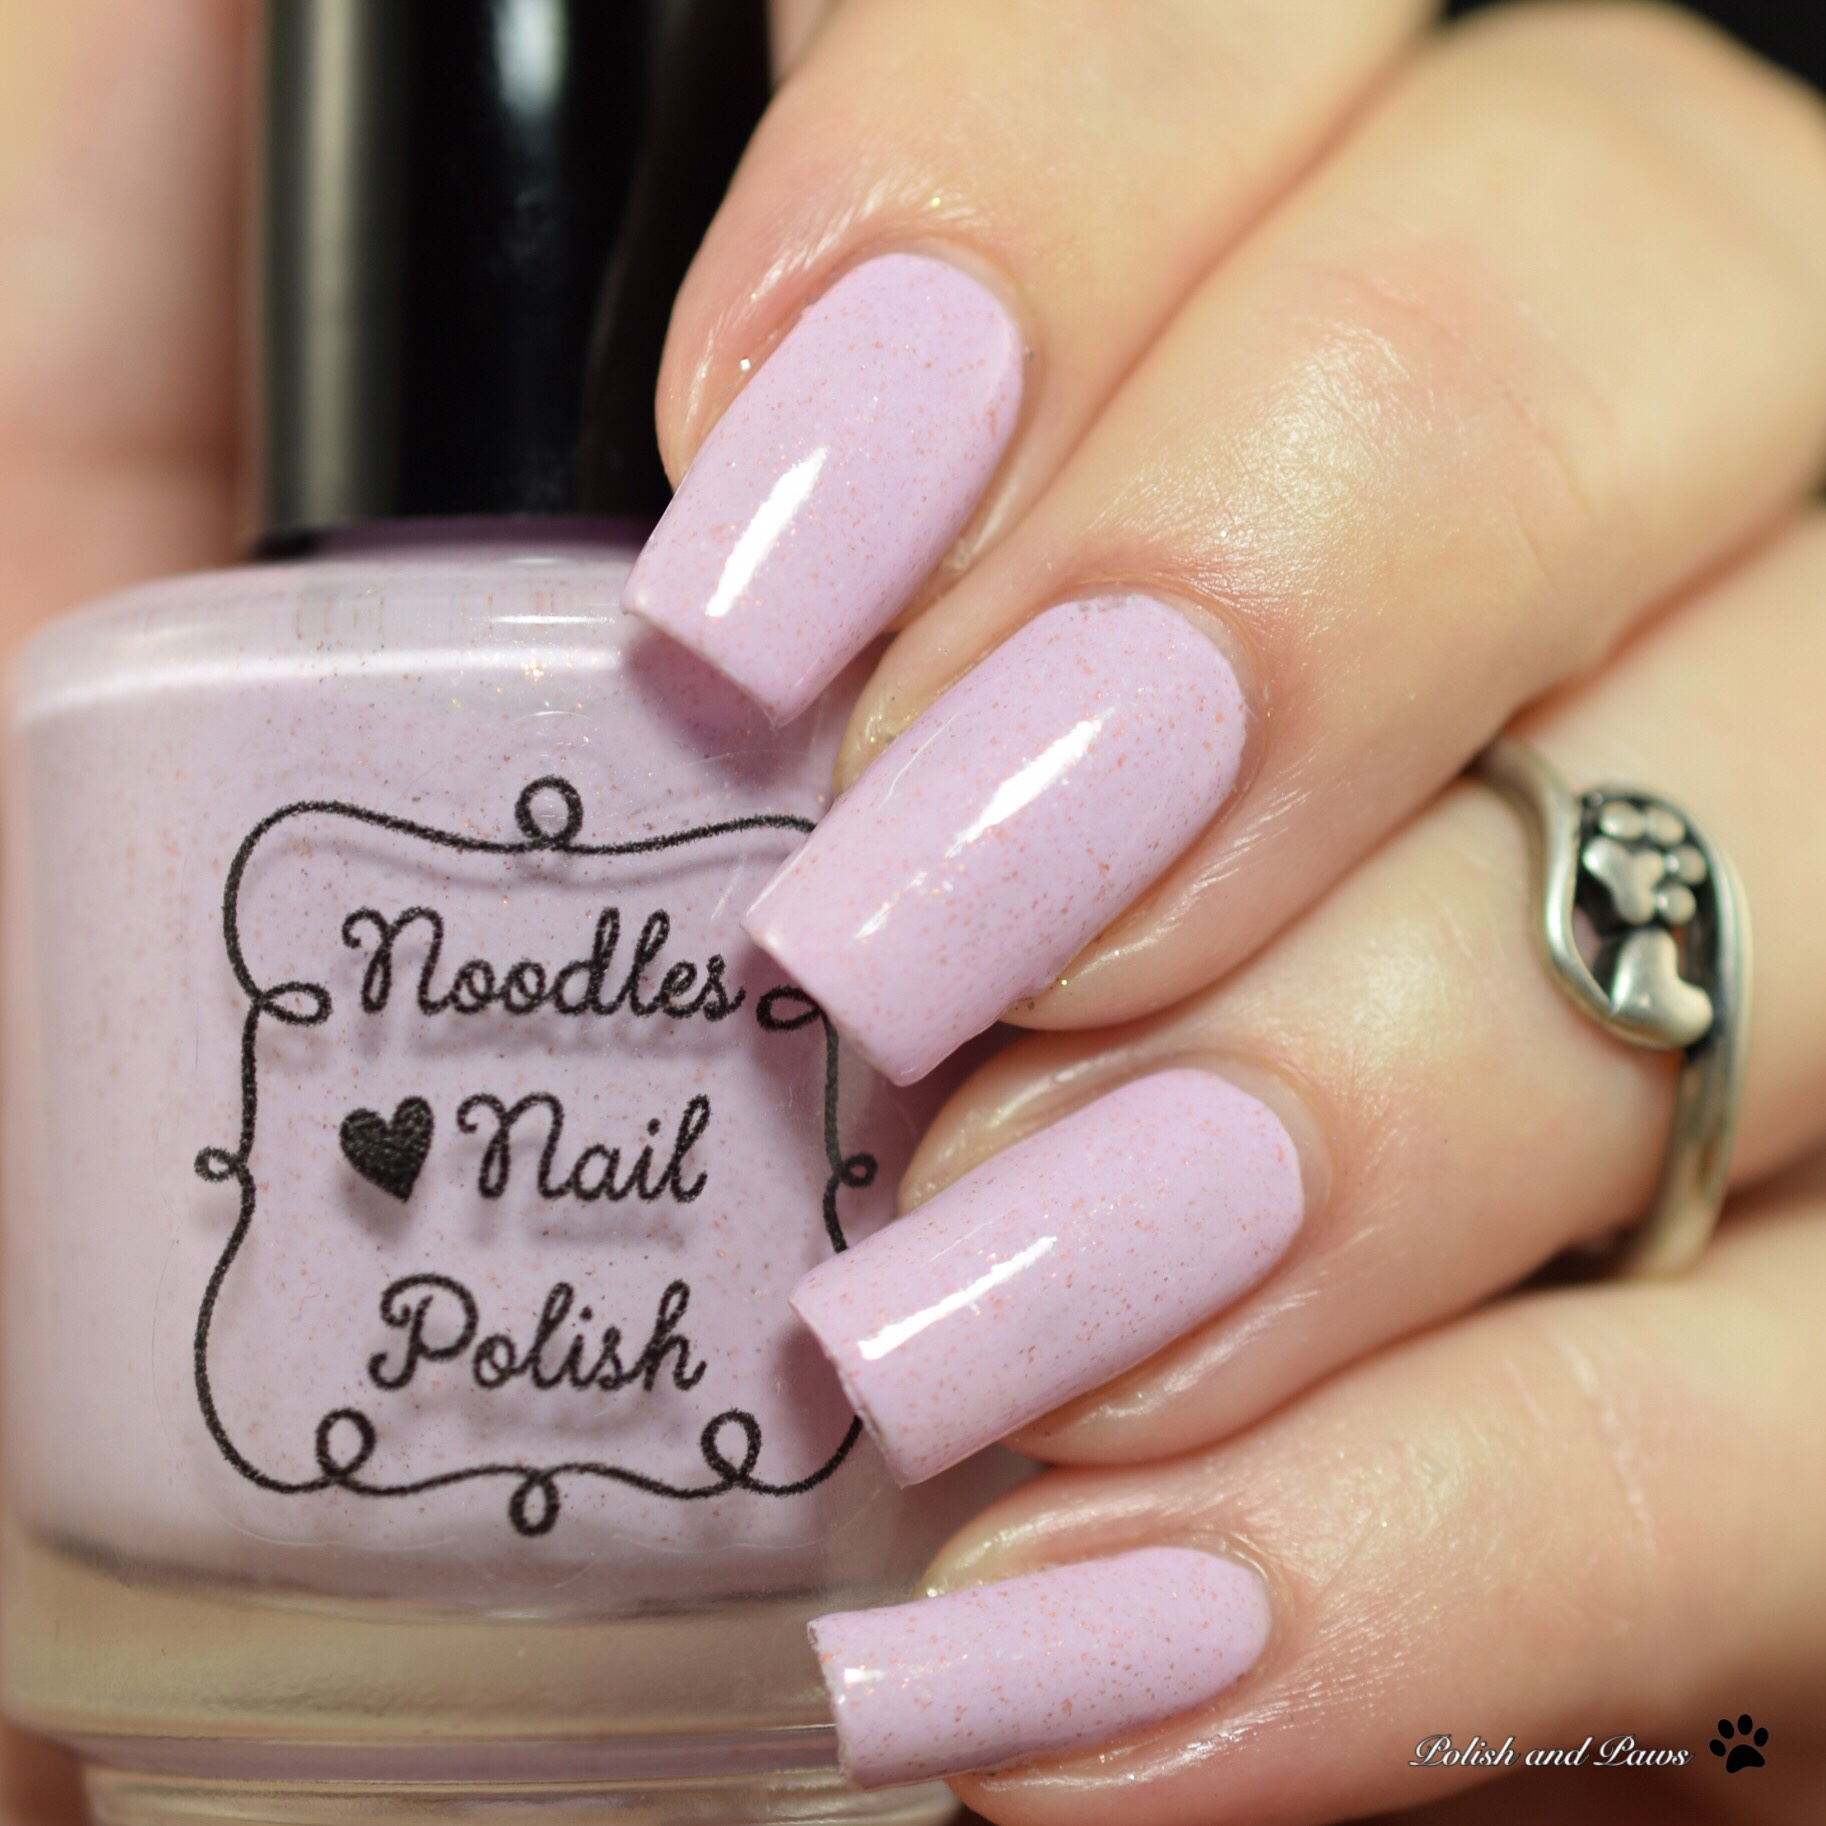 Noodles Nail Polish Lilacs and Lilies